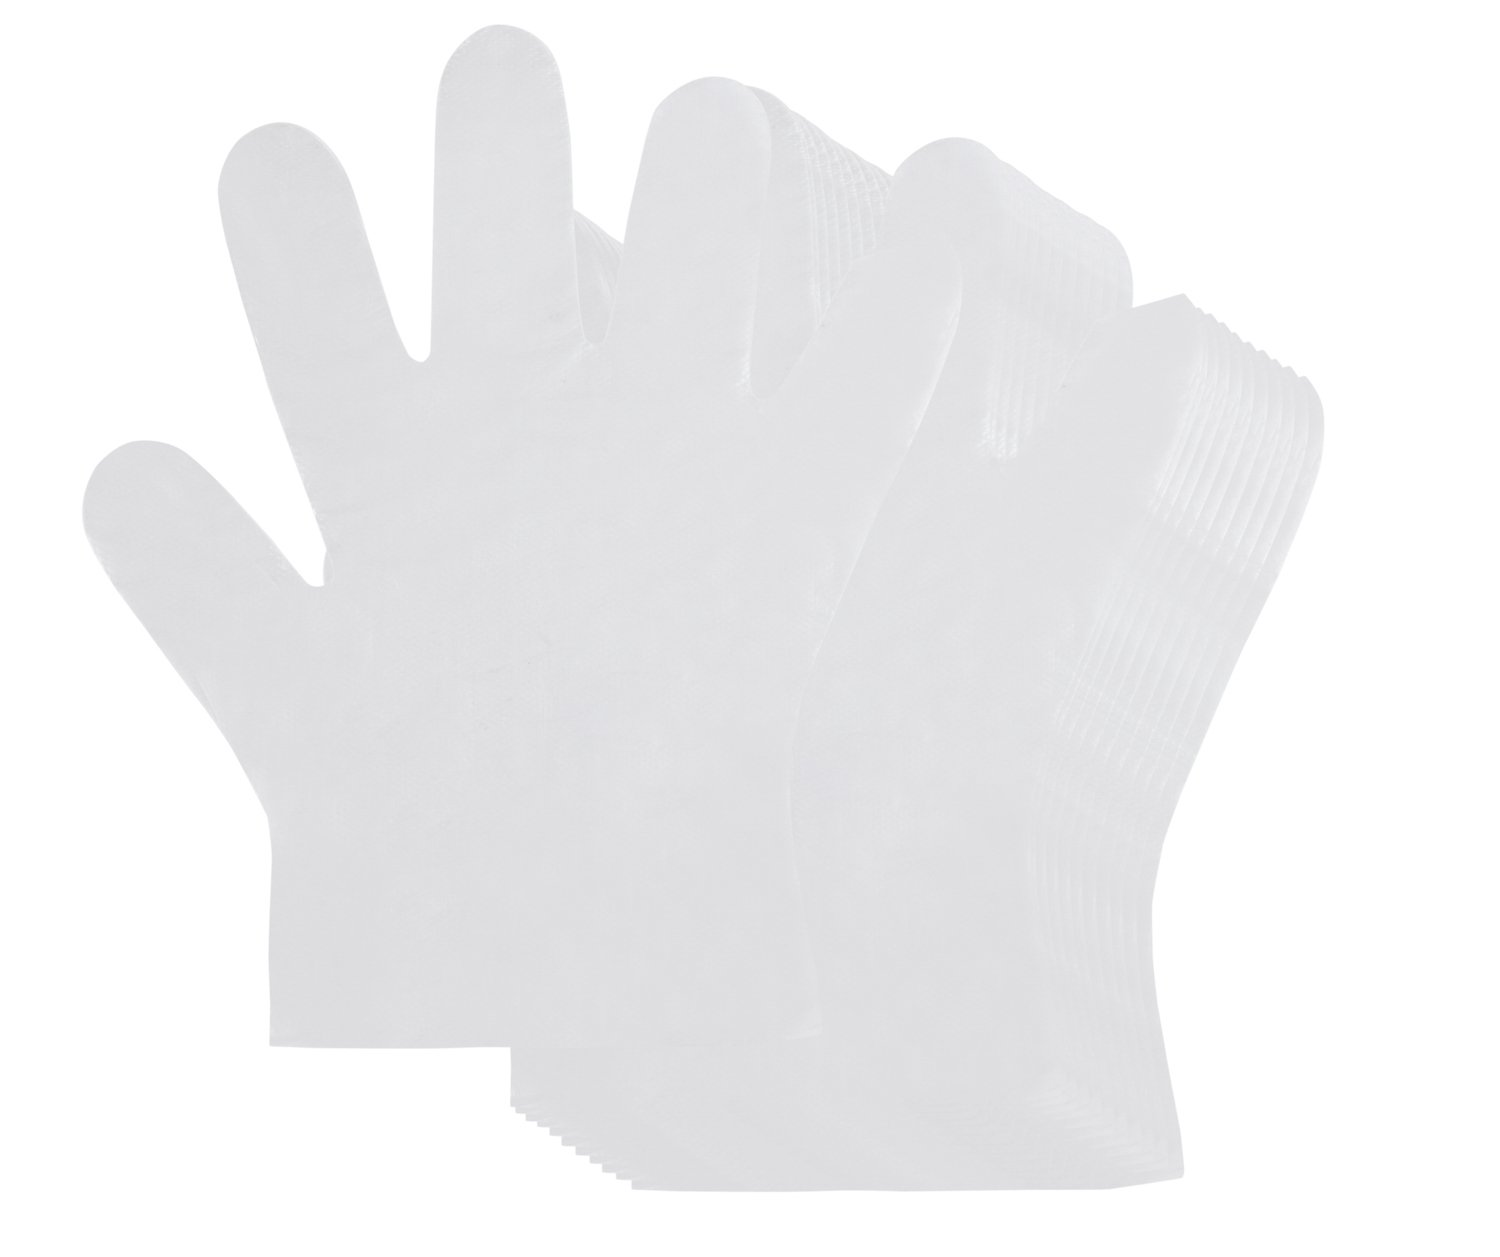 Multipurpose Disposable Gloves - 1000-Count Plastic Food Prep Gloves, Latex-Free Gloves, Ideal for Children Arts and Crafts, and Painting - Transparent, Kids Size, 7.5 x 6.3 Inches